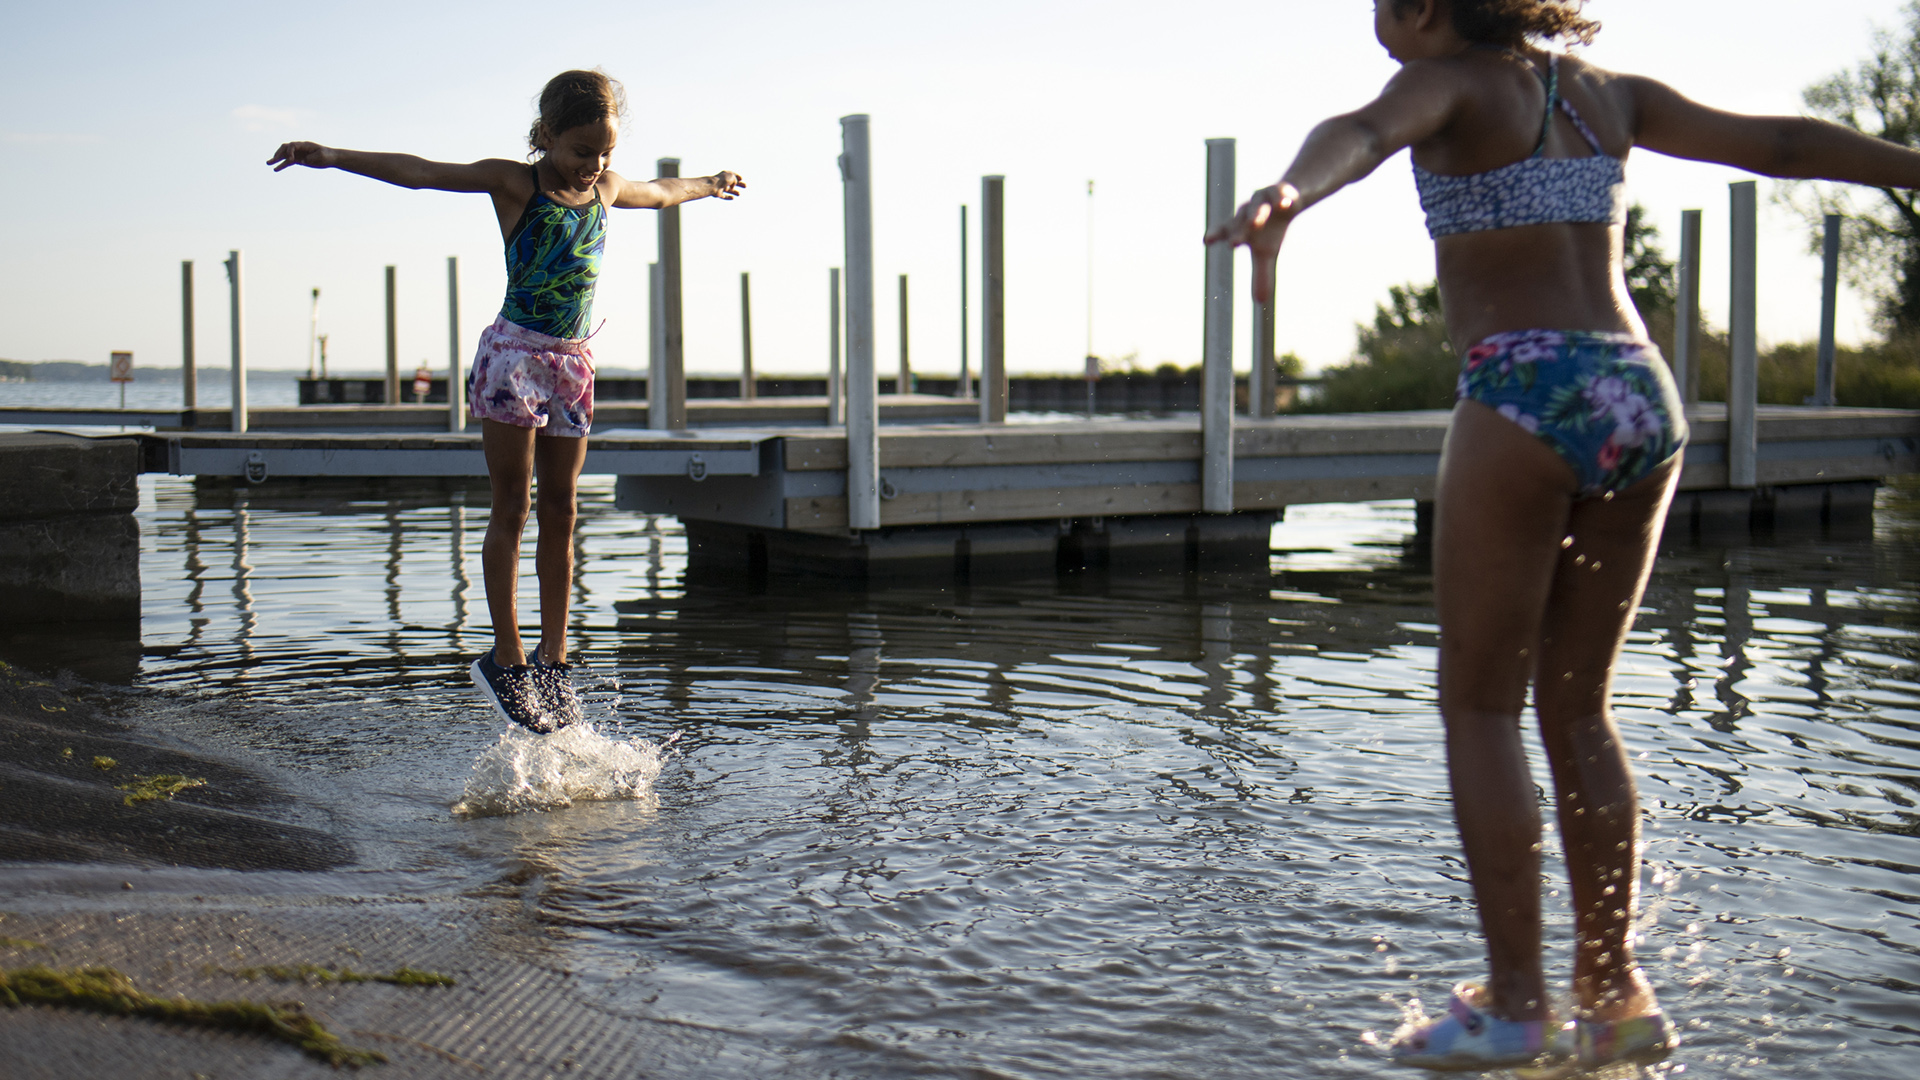 Stoni Hawkins and Terriyah Moss jump in the water at a boat launch at the mouth of a creek, with docks in the background.